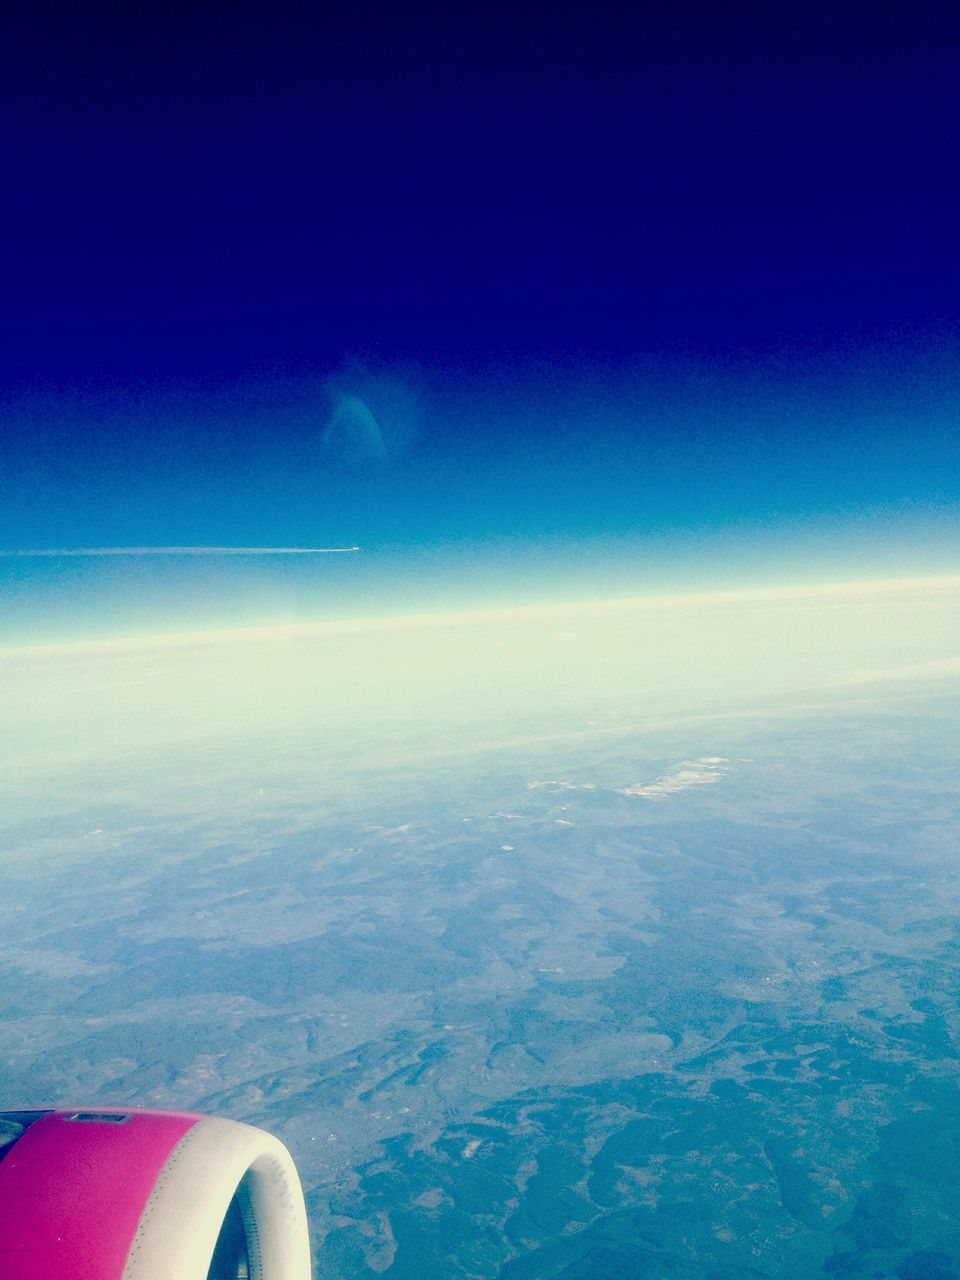 aerial view, nature, beauty in nature, scenics, blue, journey, transportation, airplane, flying, outdoors, sky, day, cloud - sky, mid-air, landscape, sea, water, airplane wing, no people